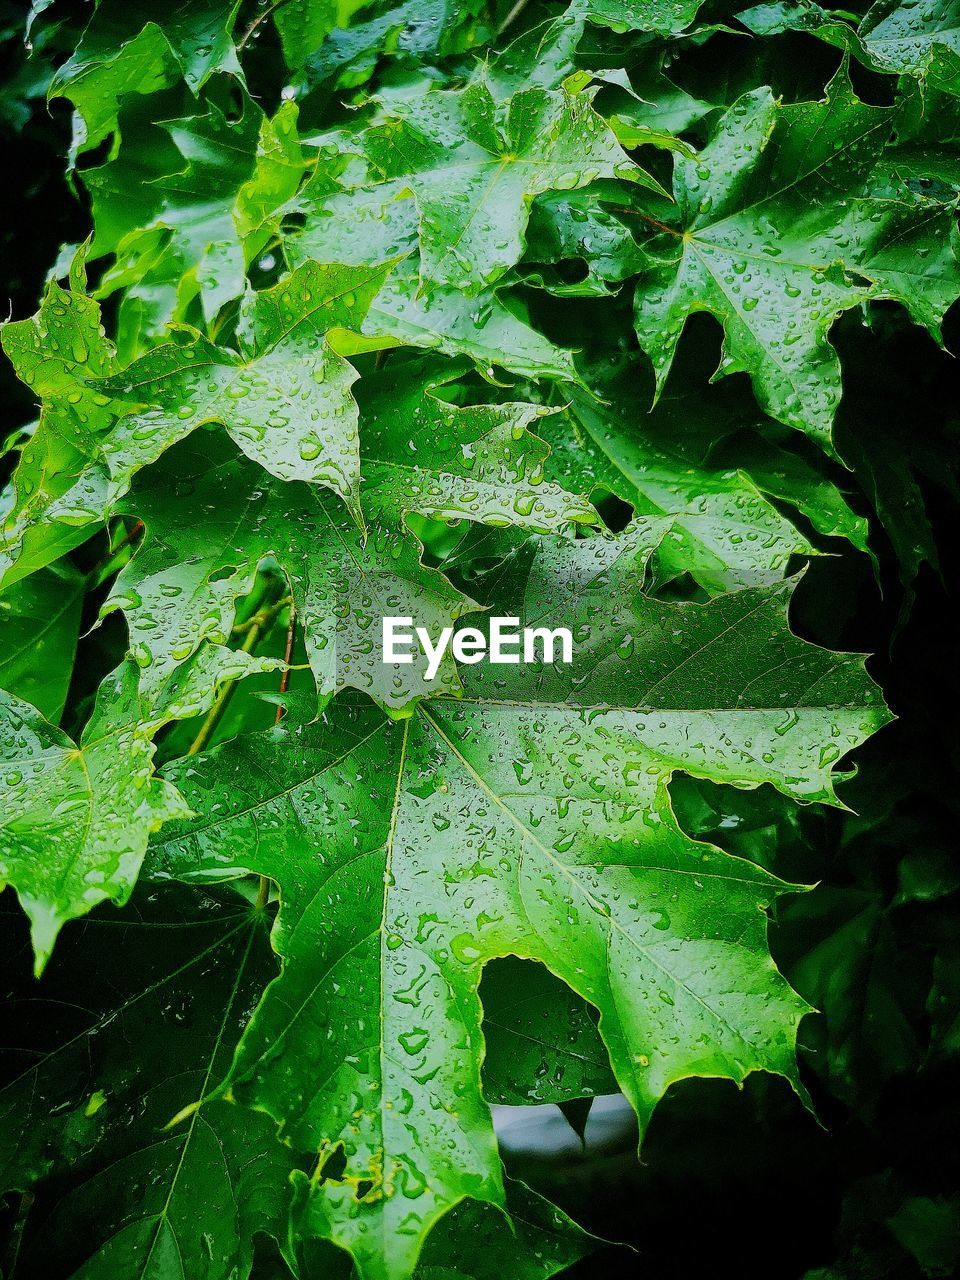 leaf, plant part, green color, growth, plant, drop, water, nature, wet, beauty in nature, close-up, day, no people, outdoors, freshness, leaves, rain, dew, raindrop, rainy season, purity